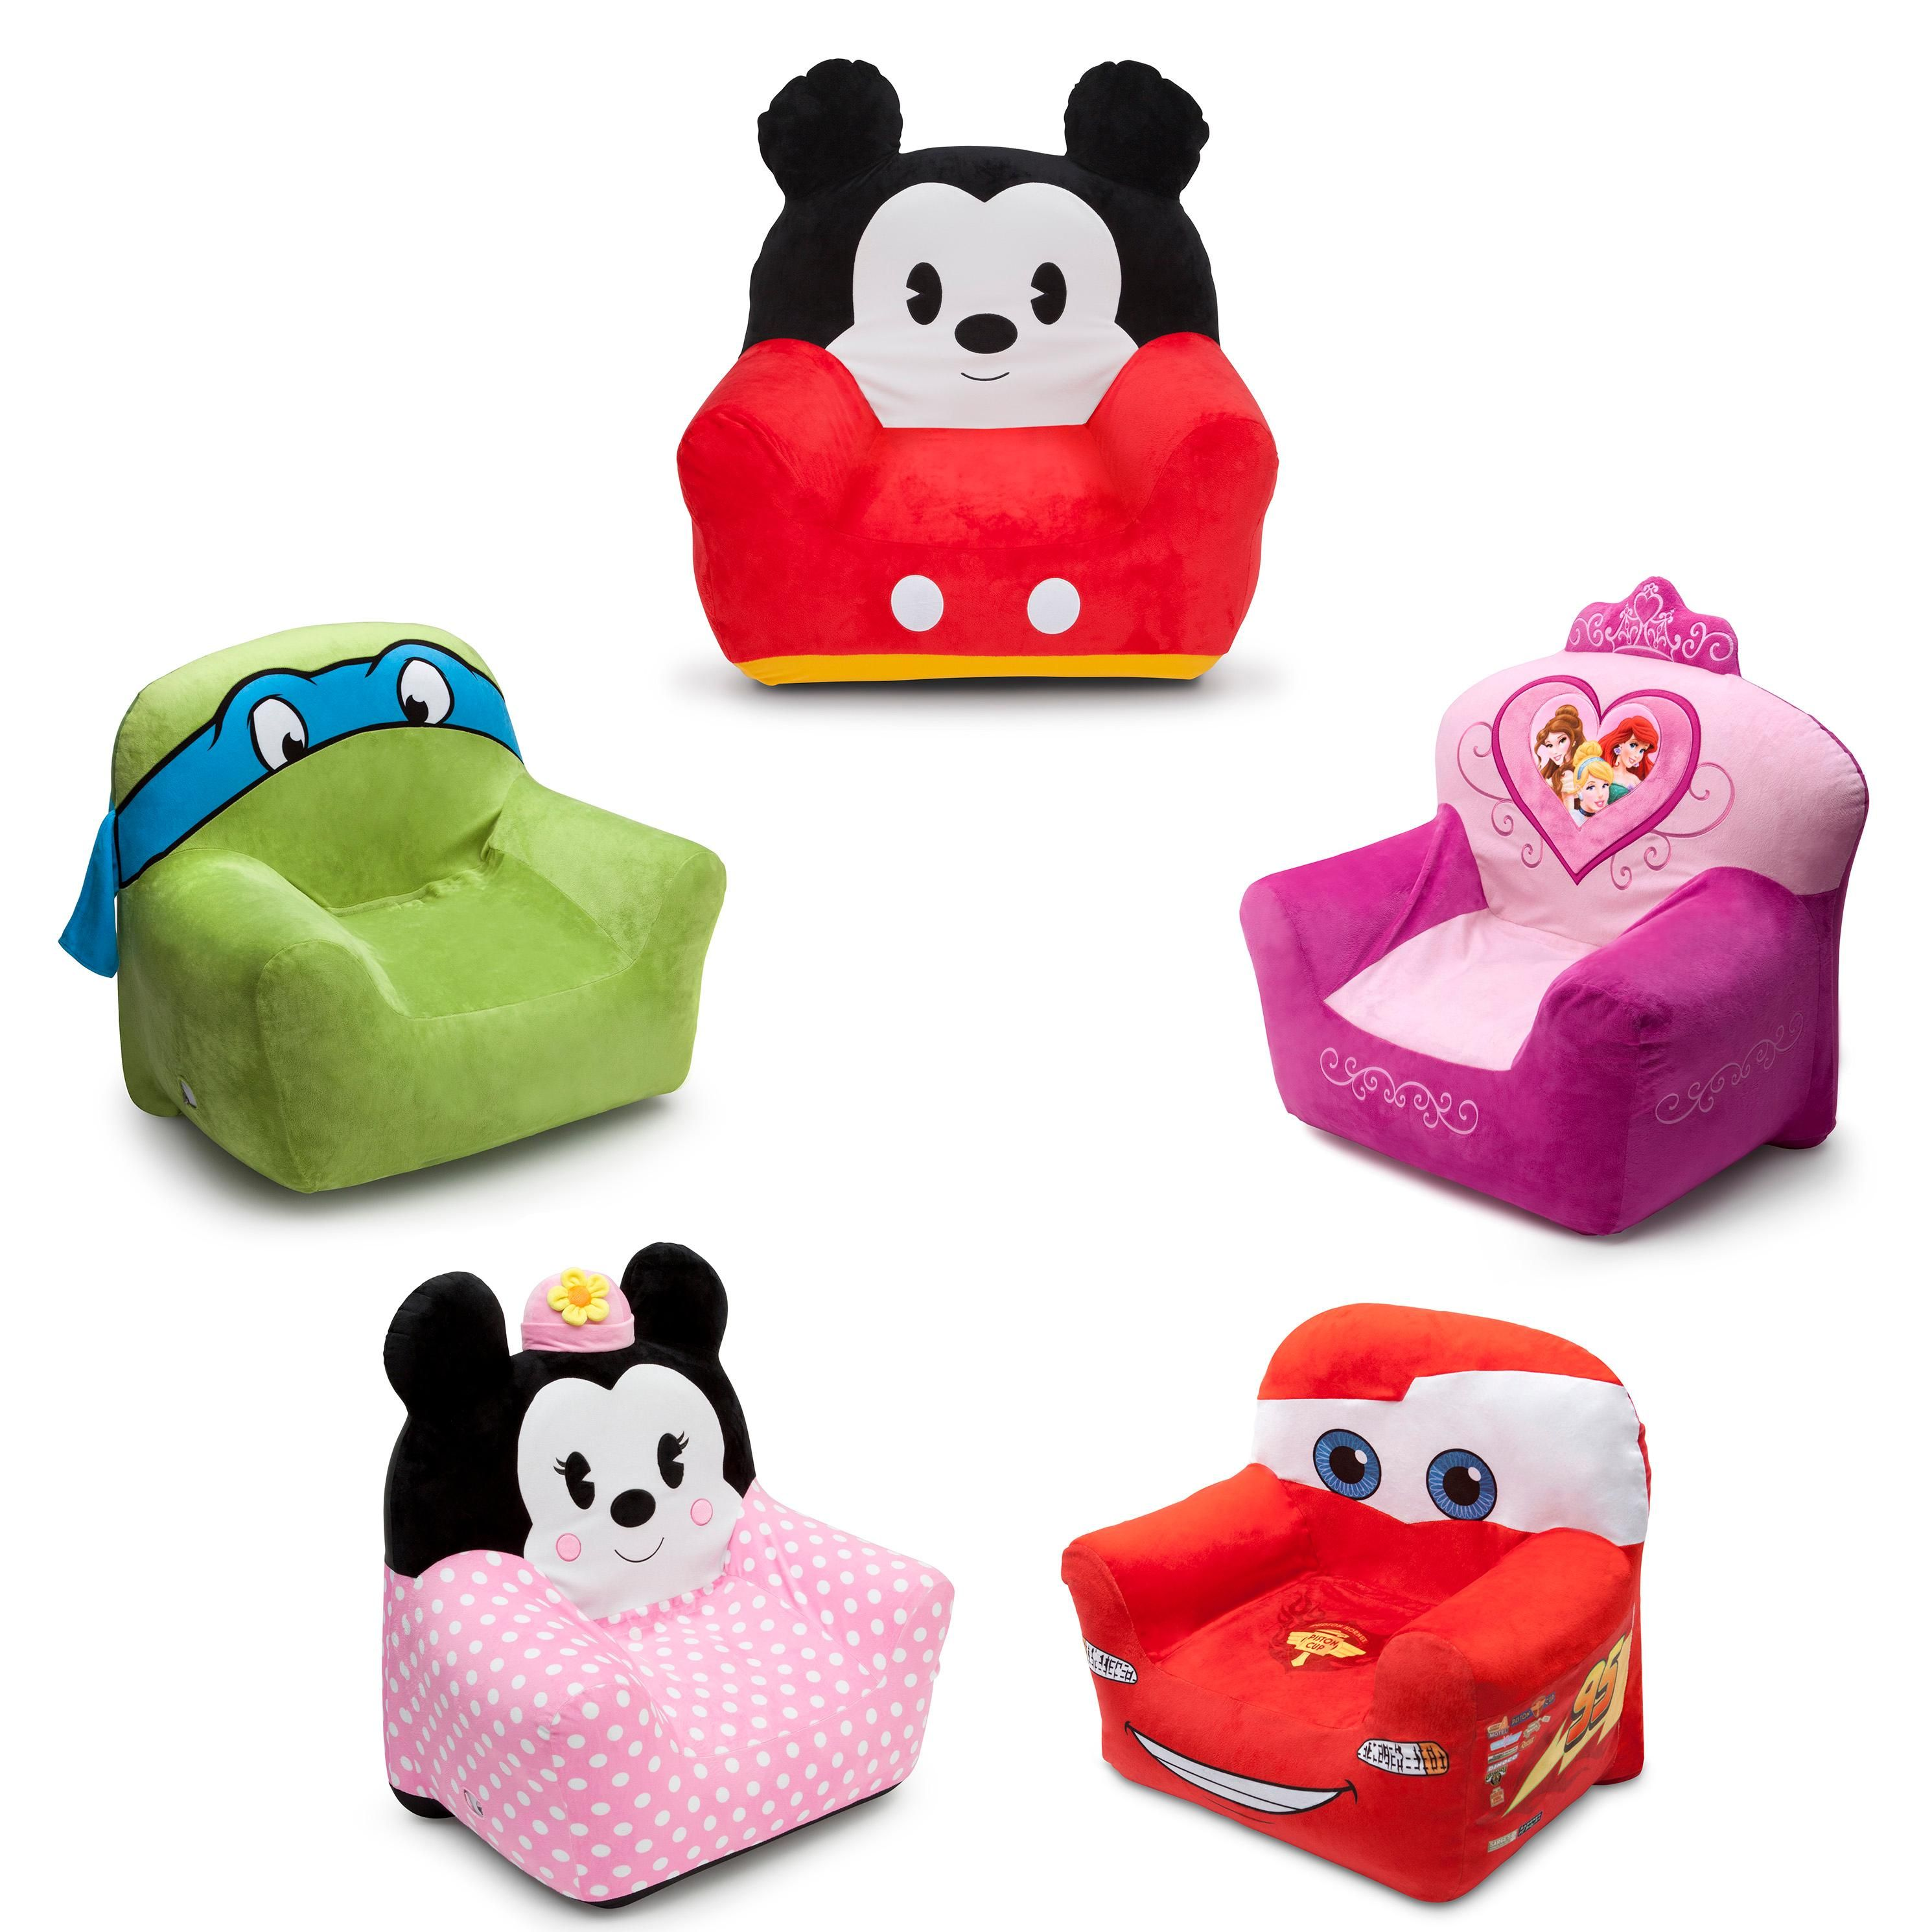 Kids Furniture Chair Room Comfy Plush Inflatable Bubble Chairs For